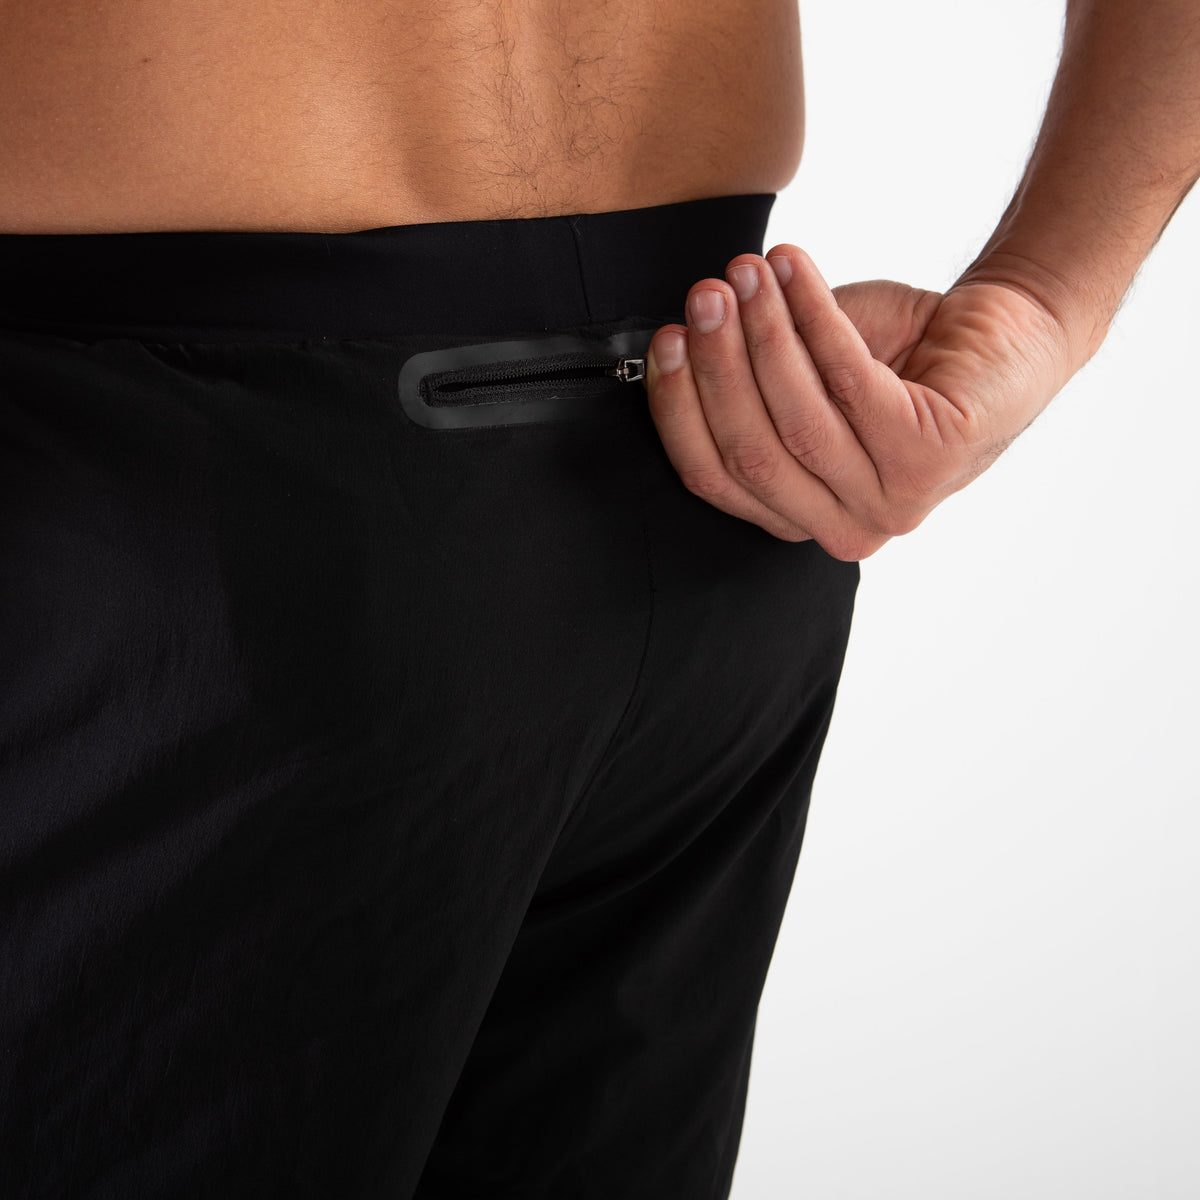 Men's RX3 Medical Grade Compression 2-in-1 Shorts zip